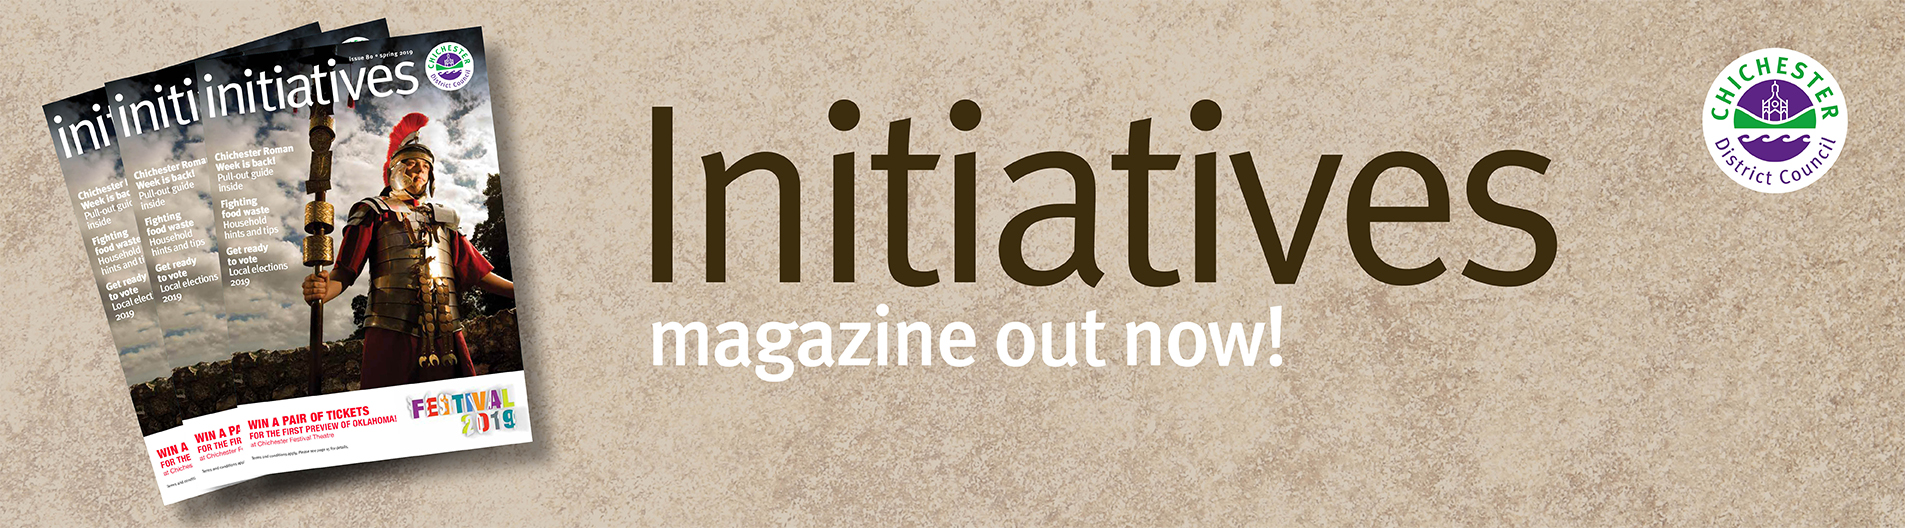 Initiatives Spring 2019 magazine